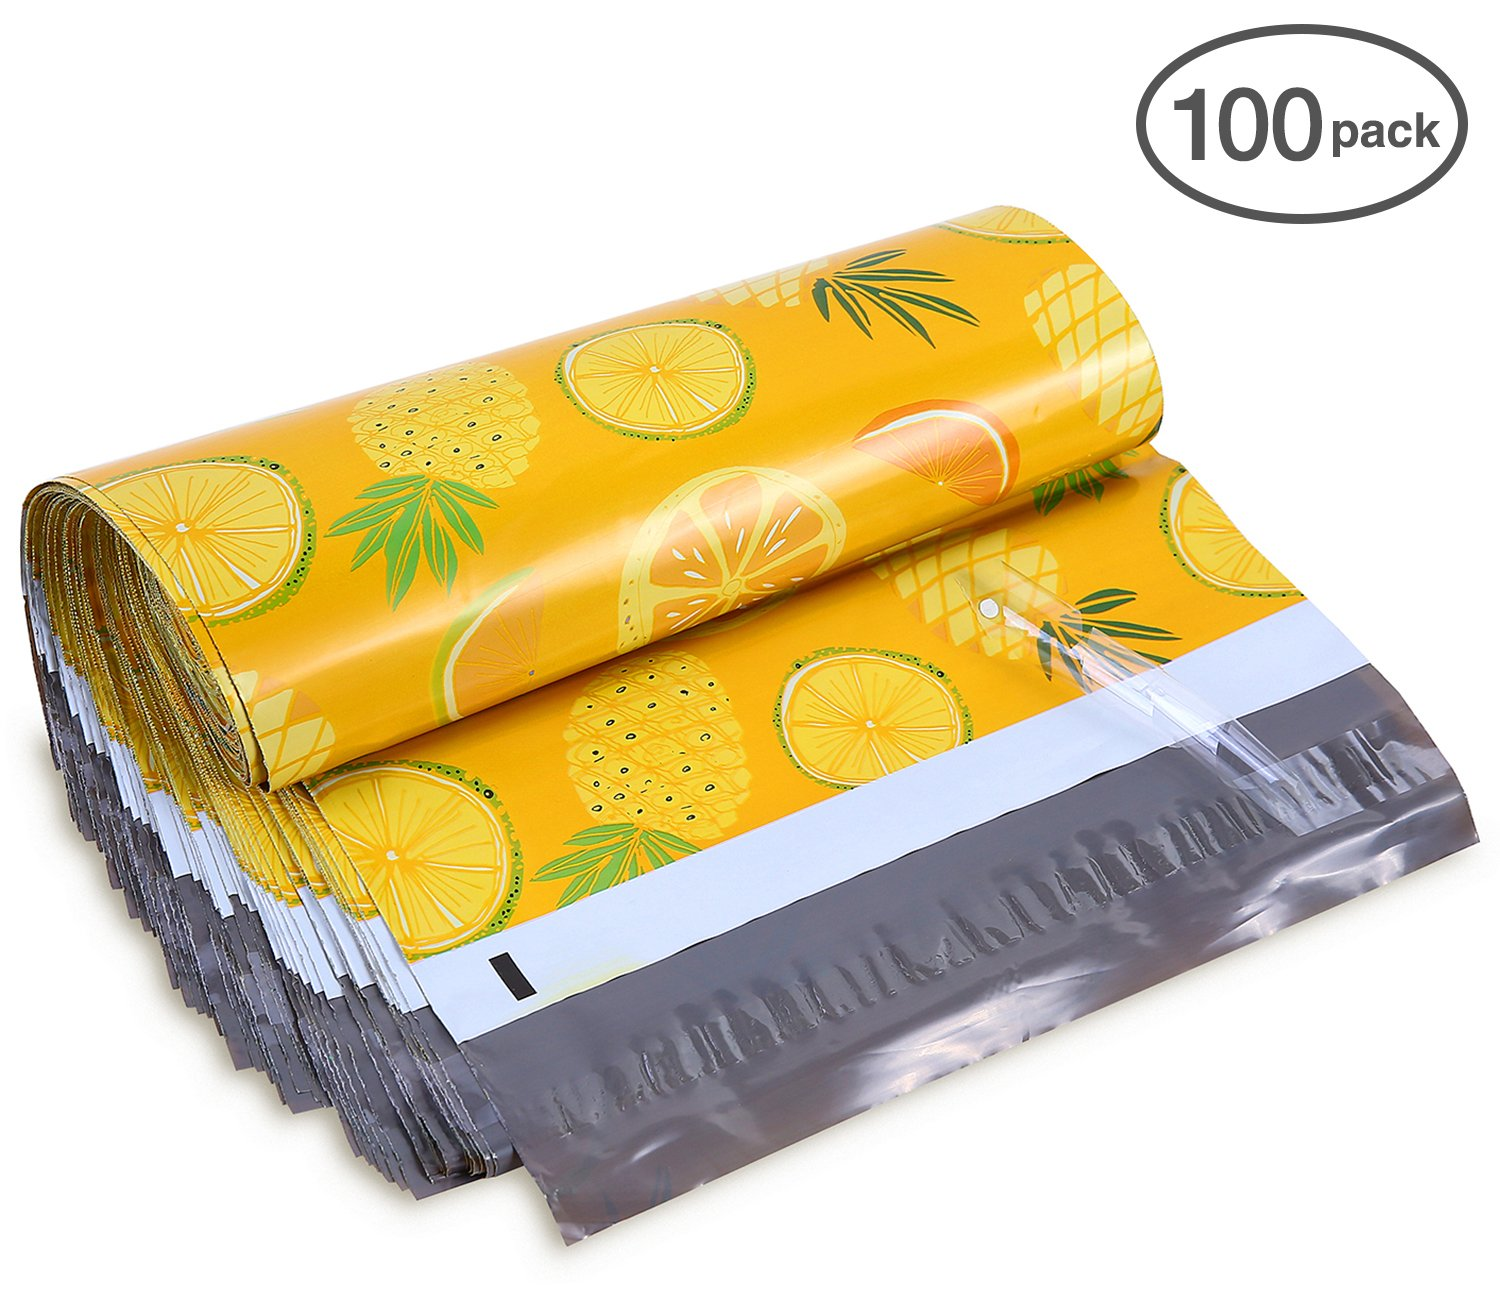 520b634f594 Best Rated in Shipping Envelope Mailers   Helpful Customer Reviews ...